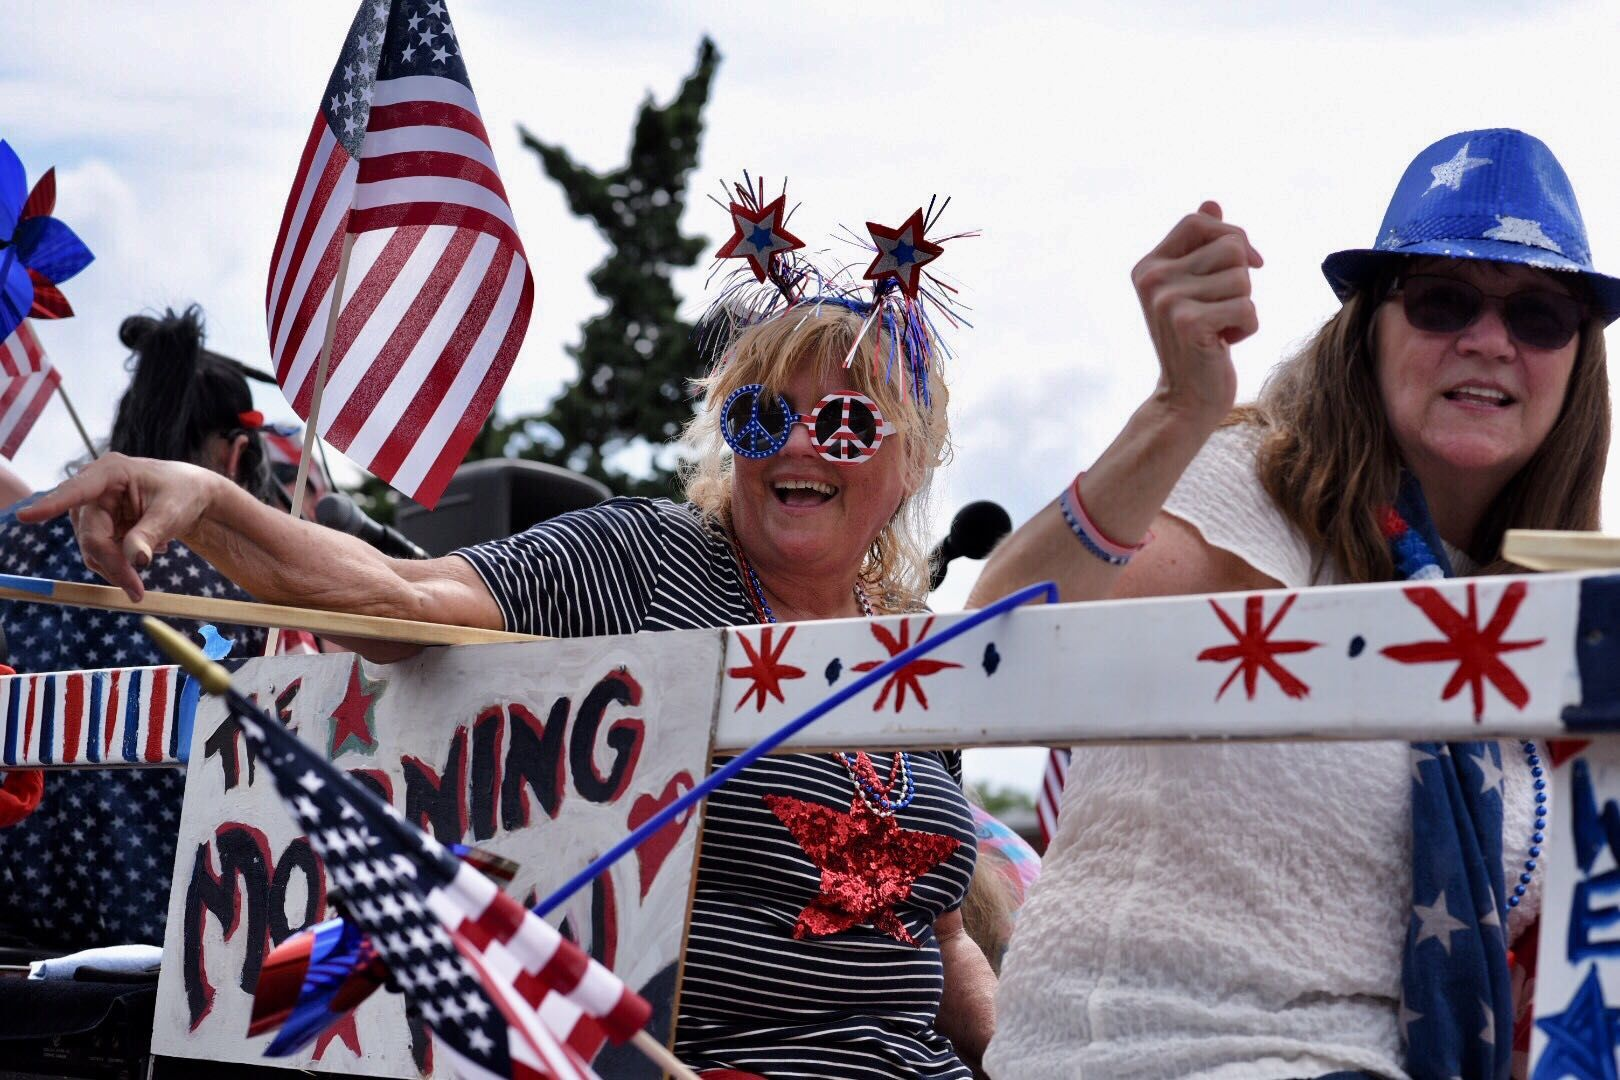 One of the floats is the Takoma Park Fourth of July Parade. (WTOP/Kate Ryan)